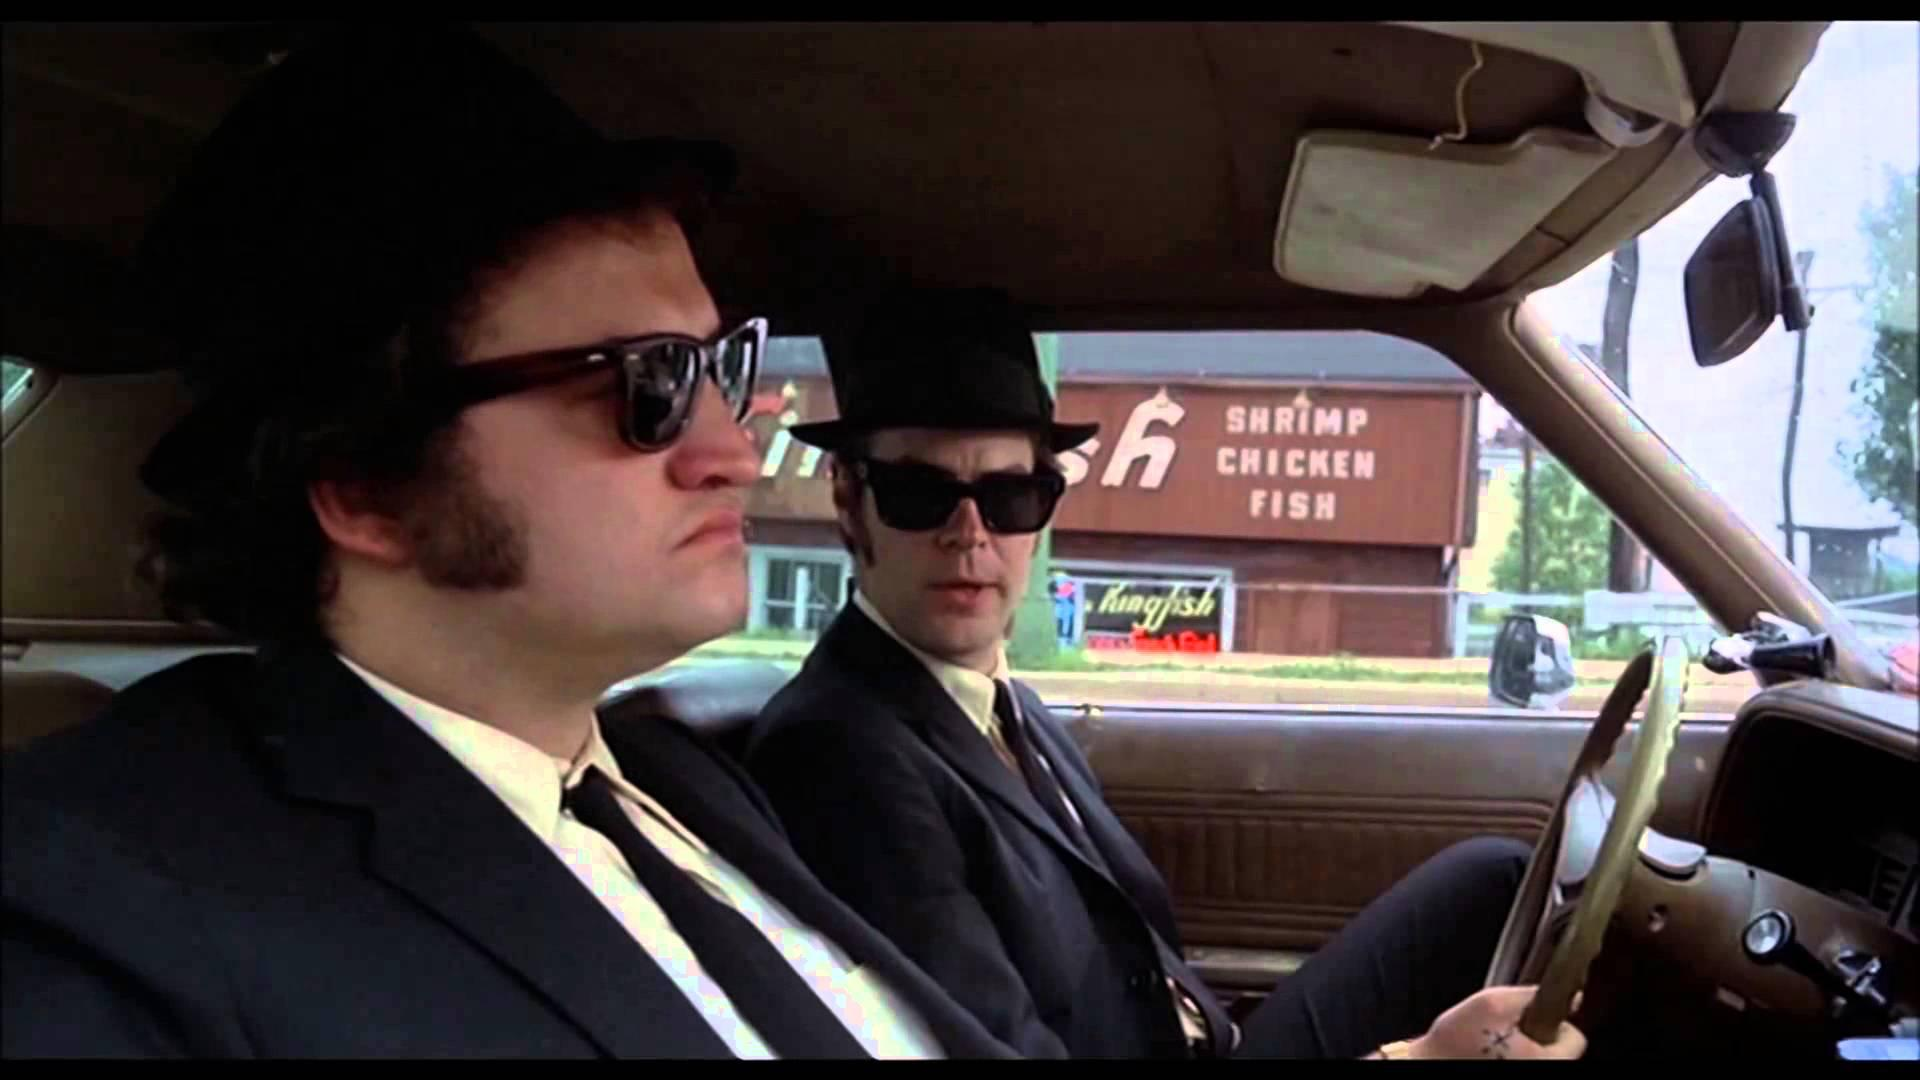 The Blues Brothers Movie Scene